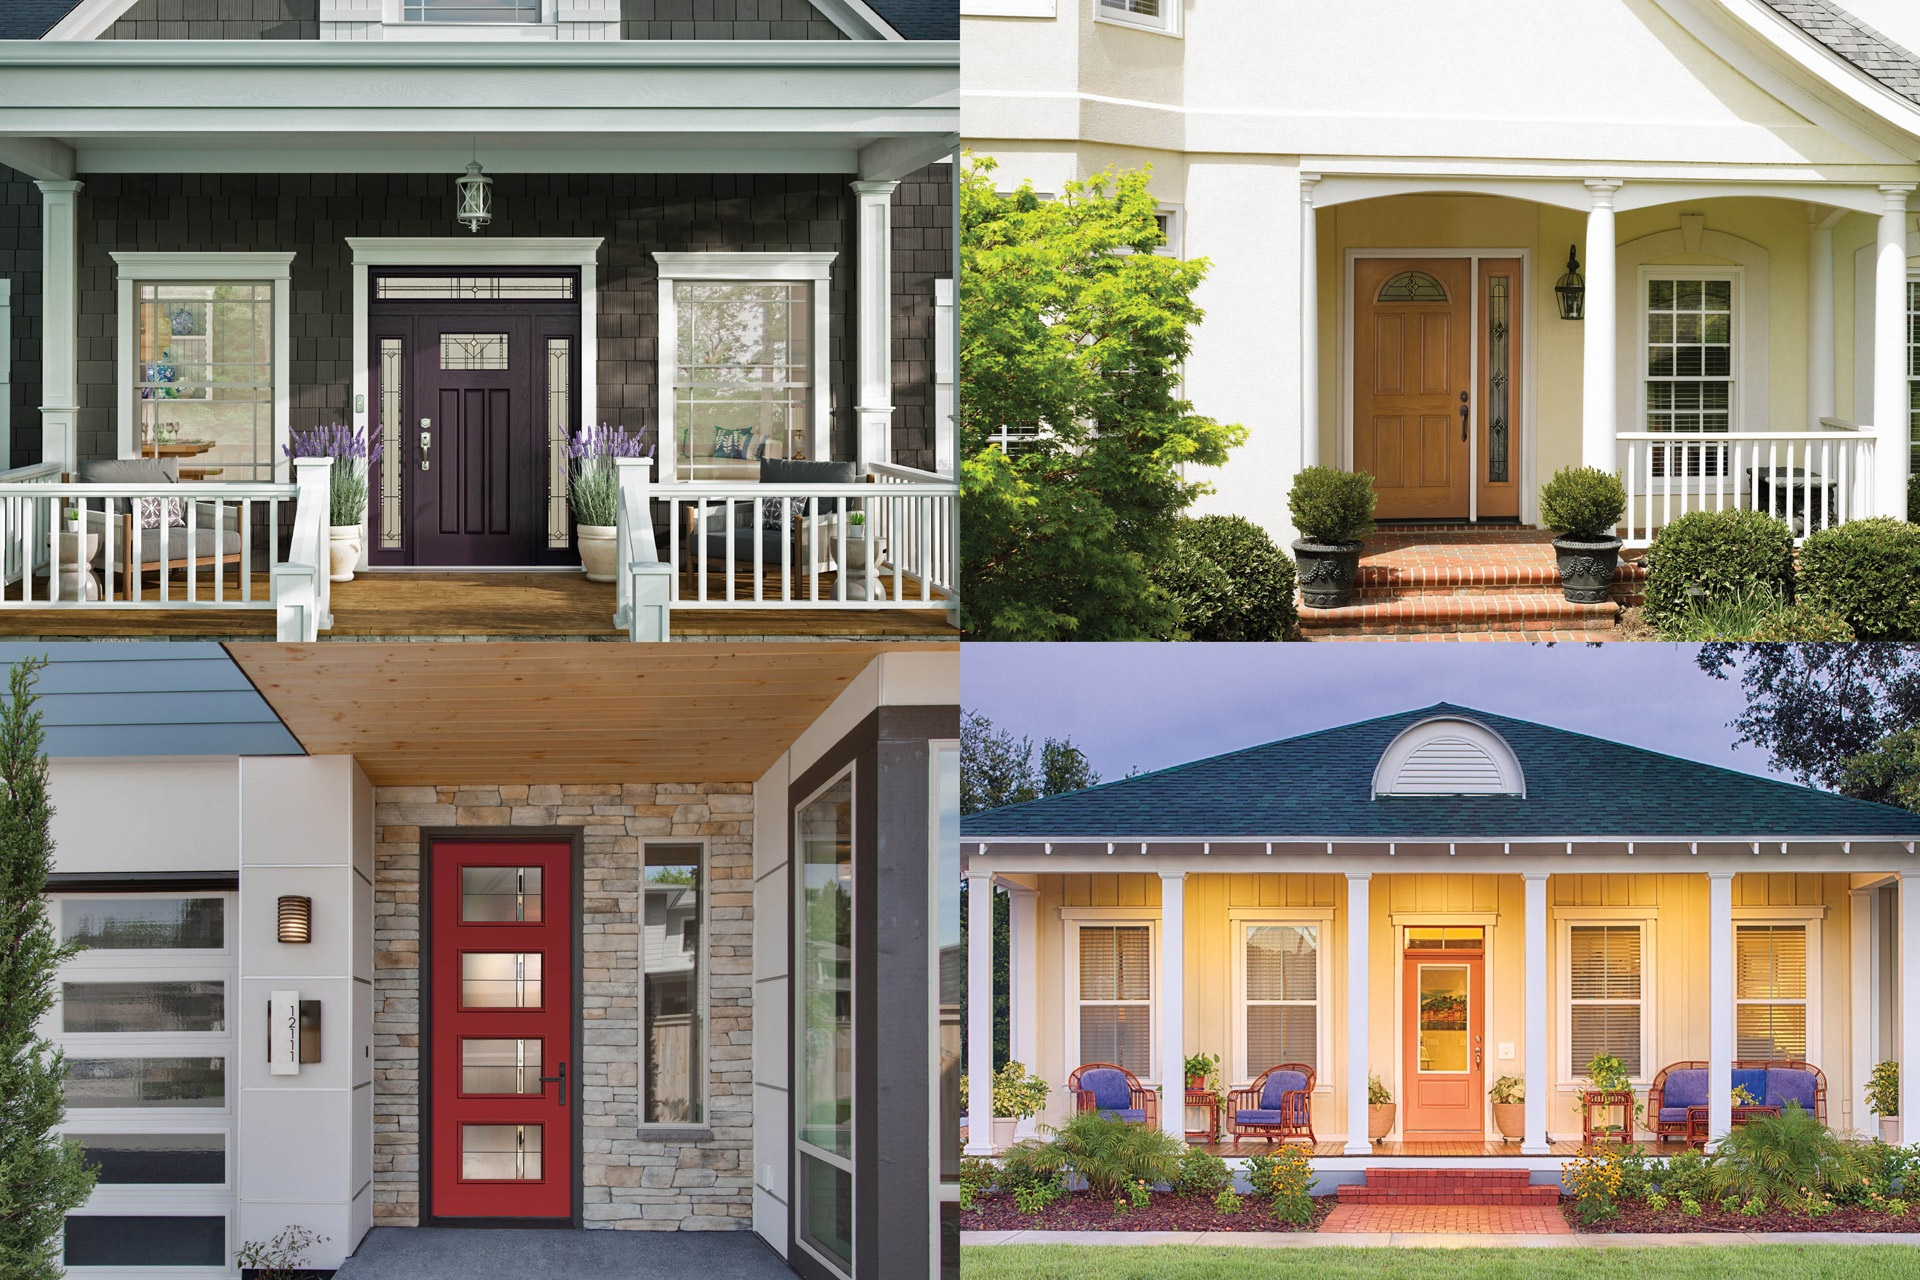 Collage of colored front doors